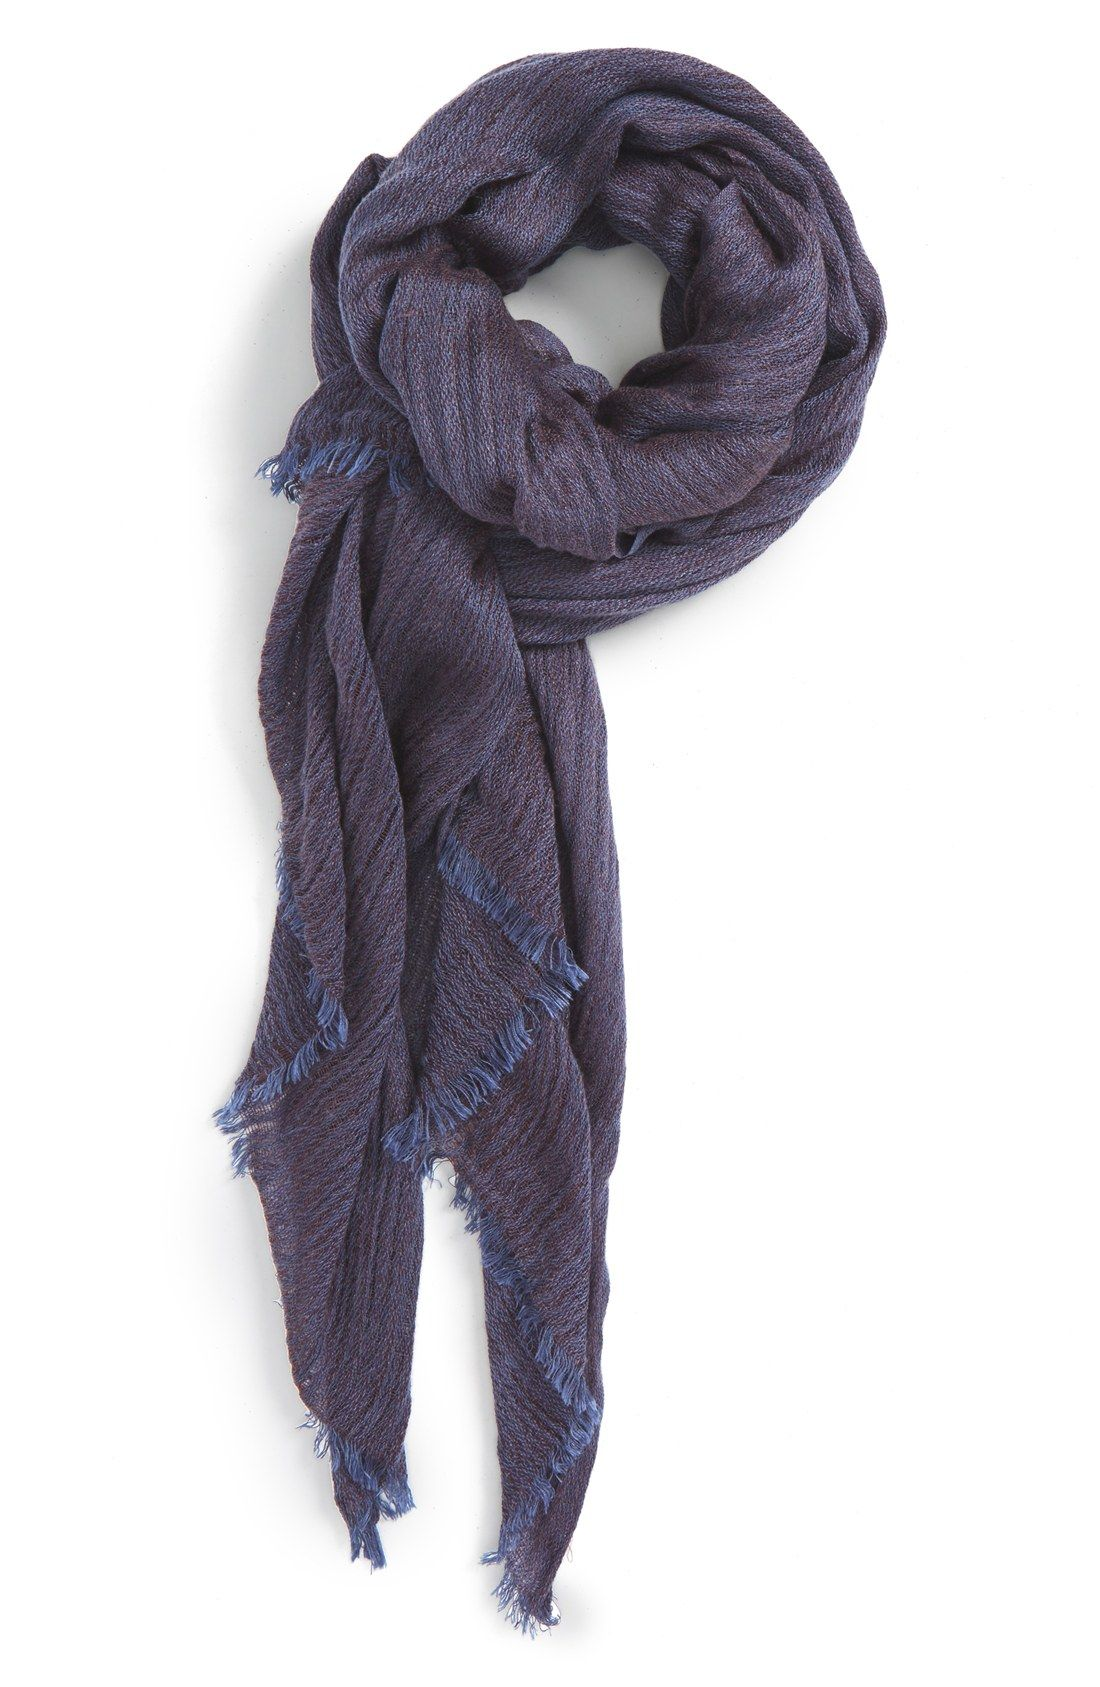 modena fringe scarf | accessories / odds & ends ...